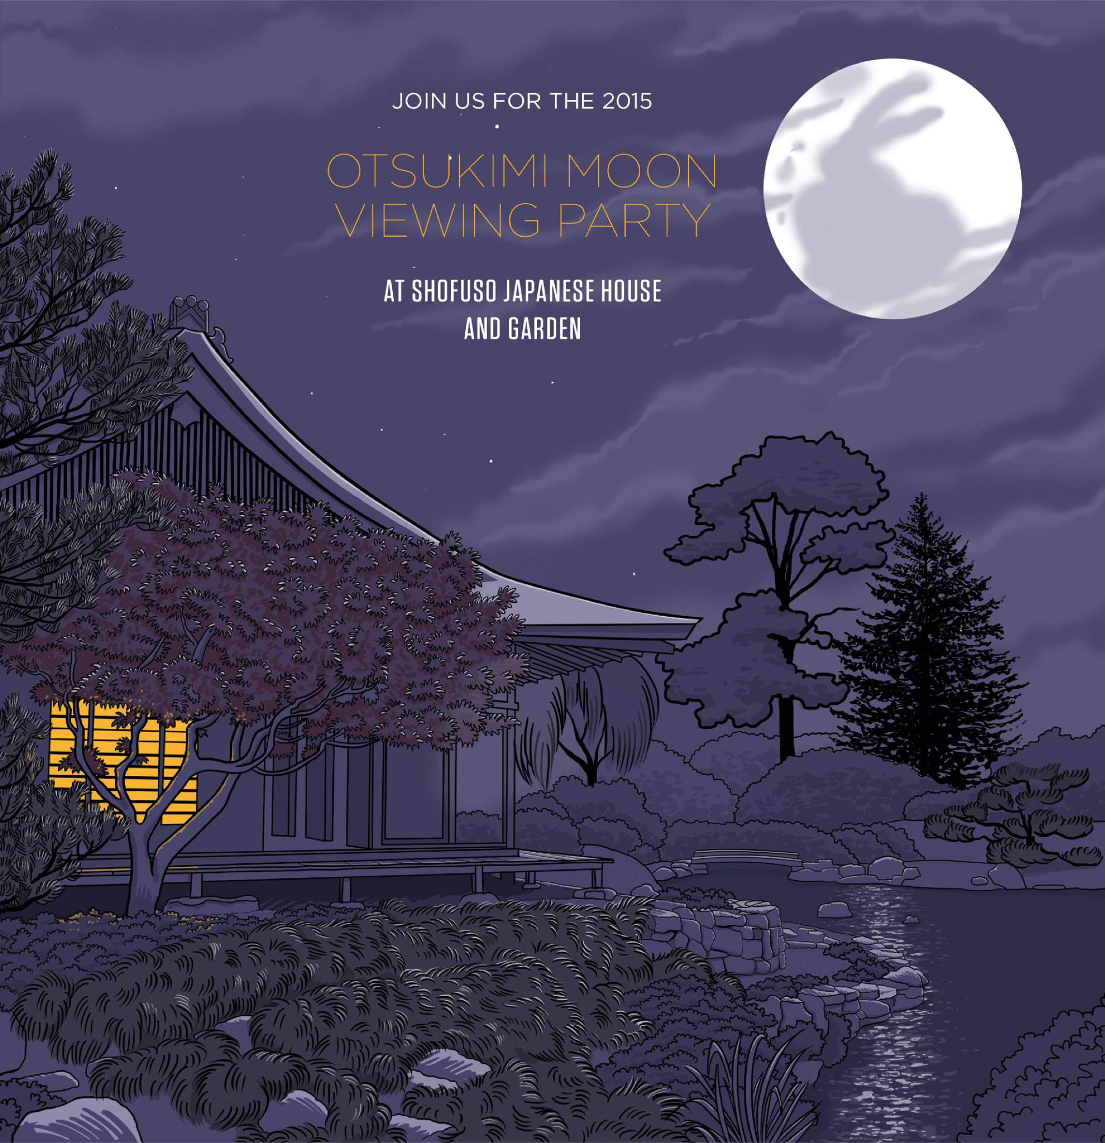 Illustration for the 2015 Otsukimi Moonviewing Party at Shofuso Japanese House and Garden.